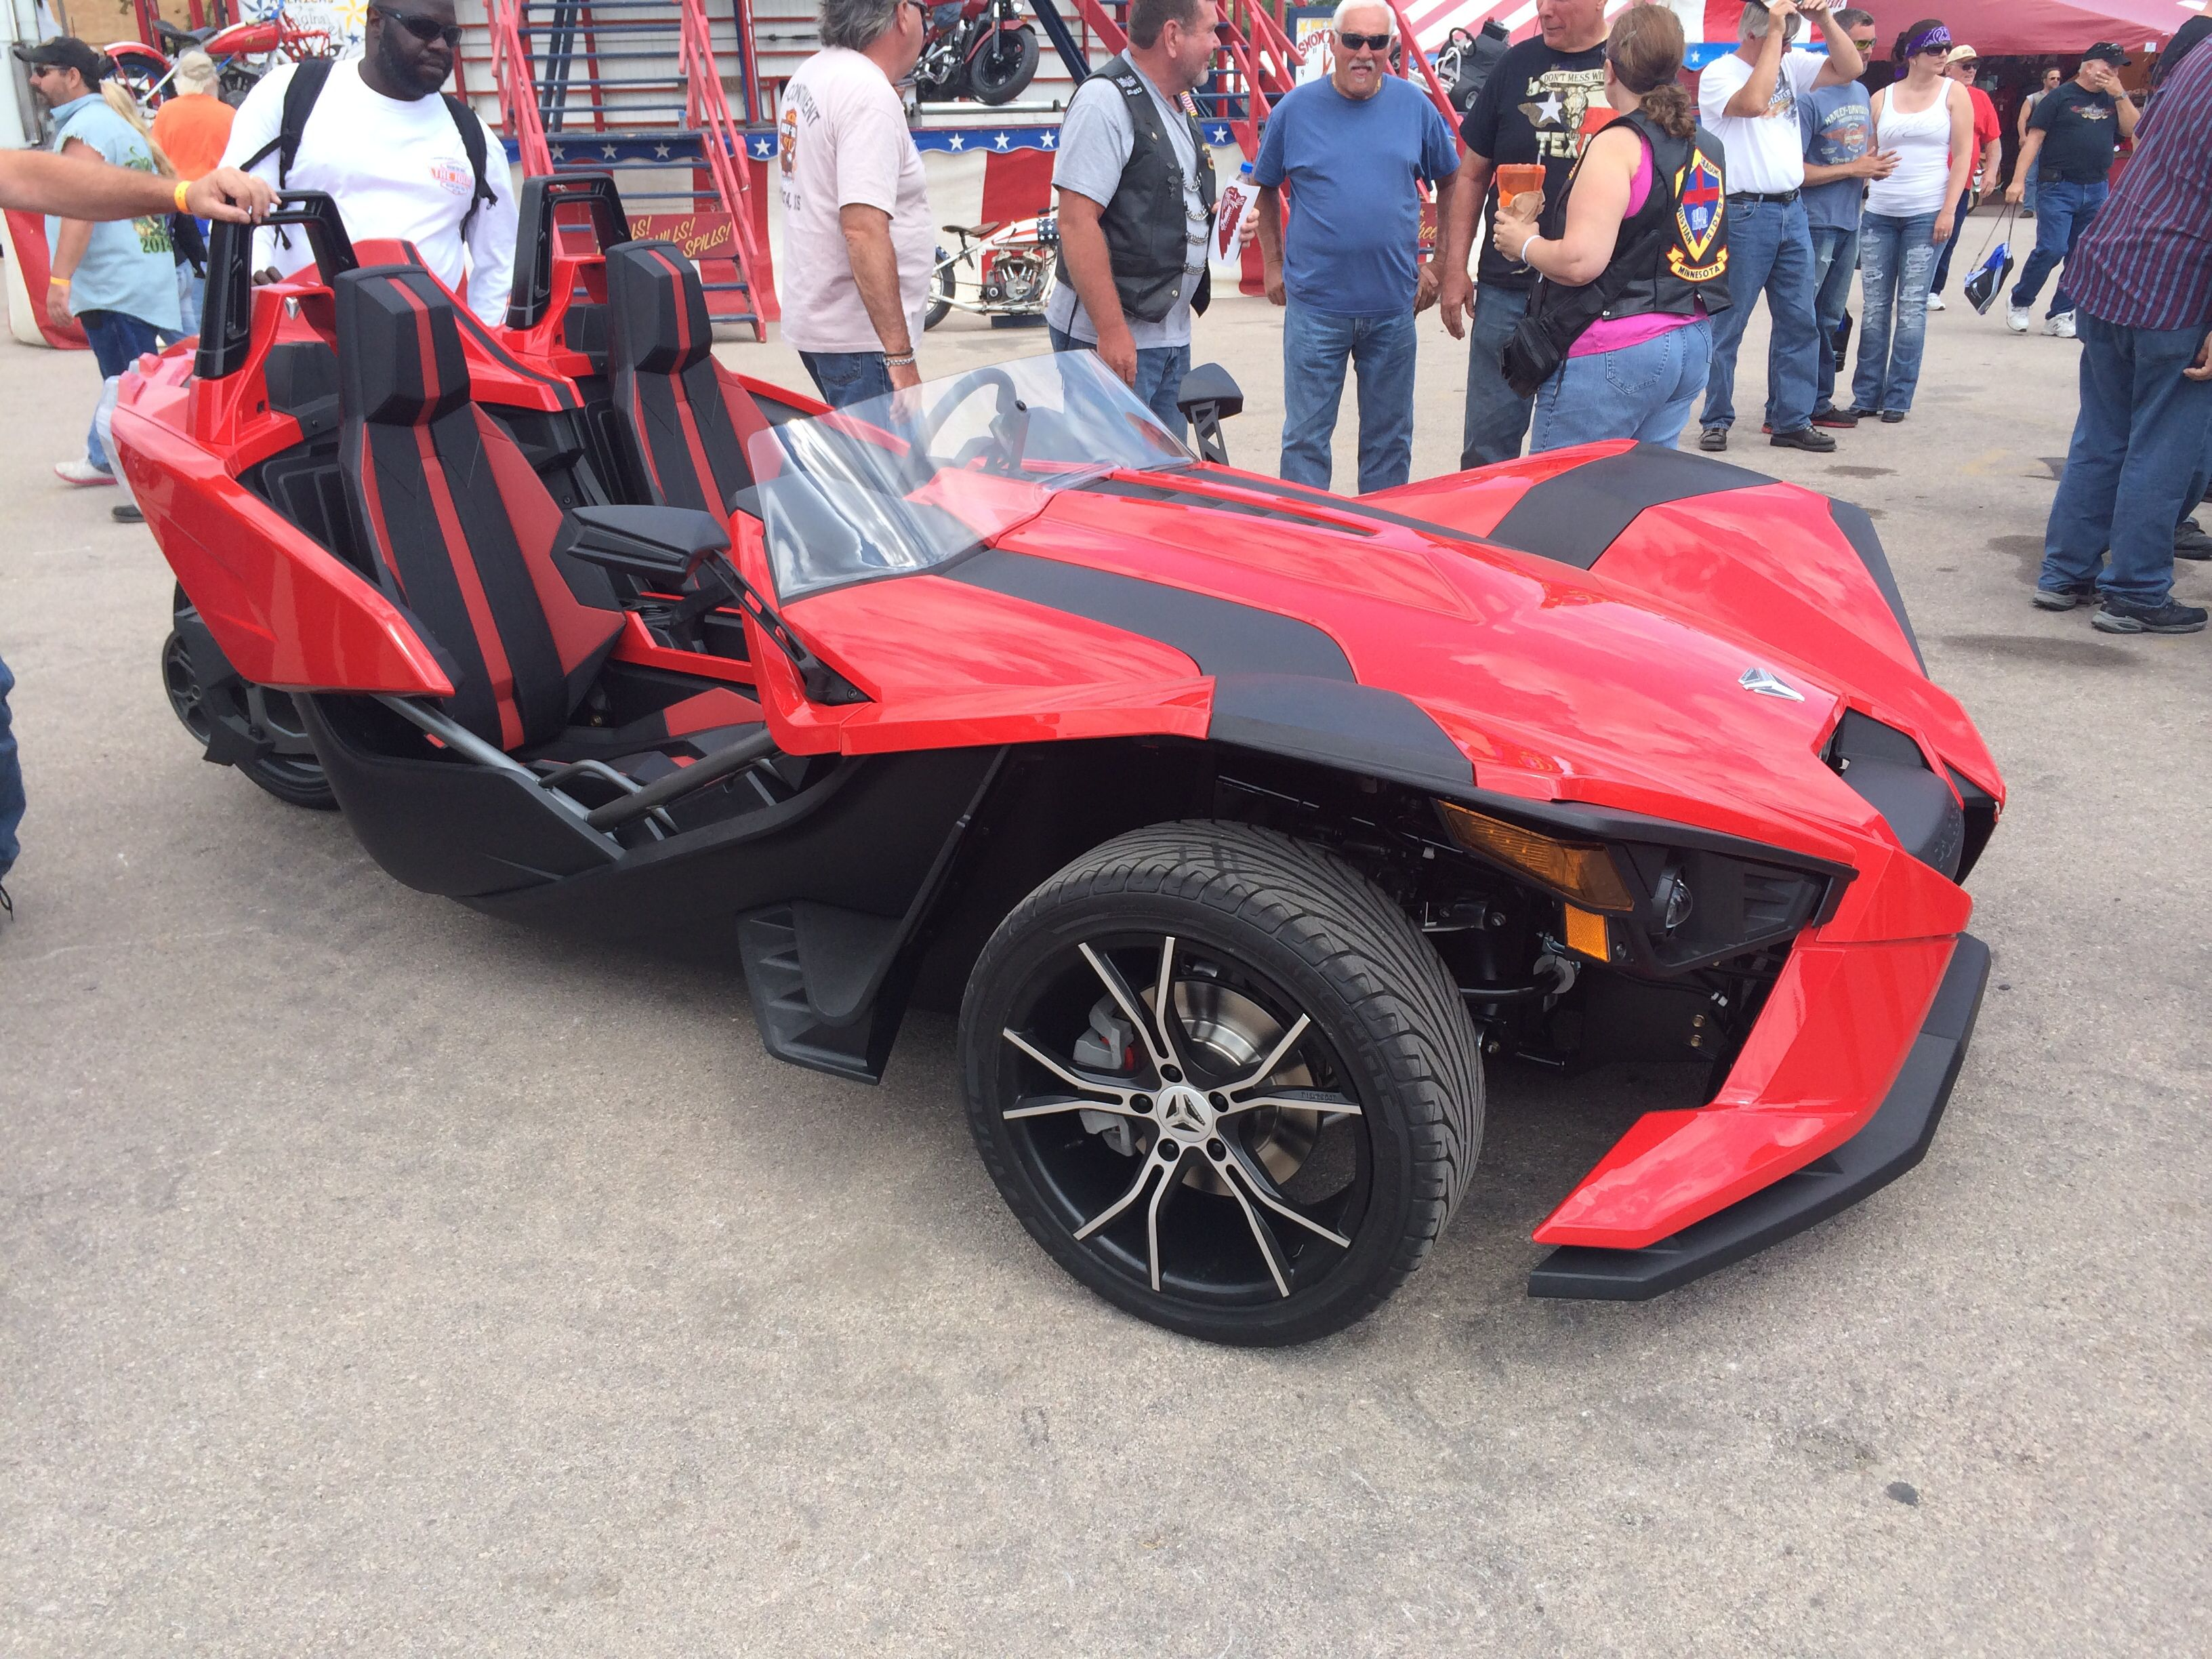 3 Wheel Car From Victory Motorcycles Not Bad Victory Motorcycles Hot Wheels Sports Car